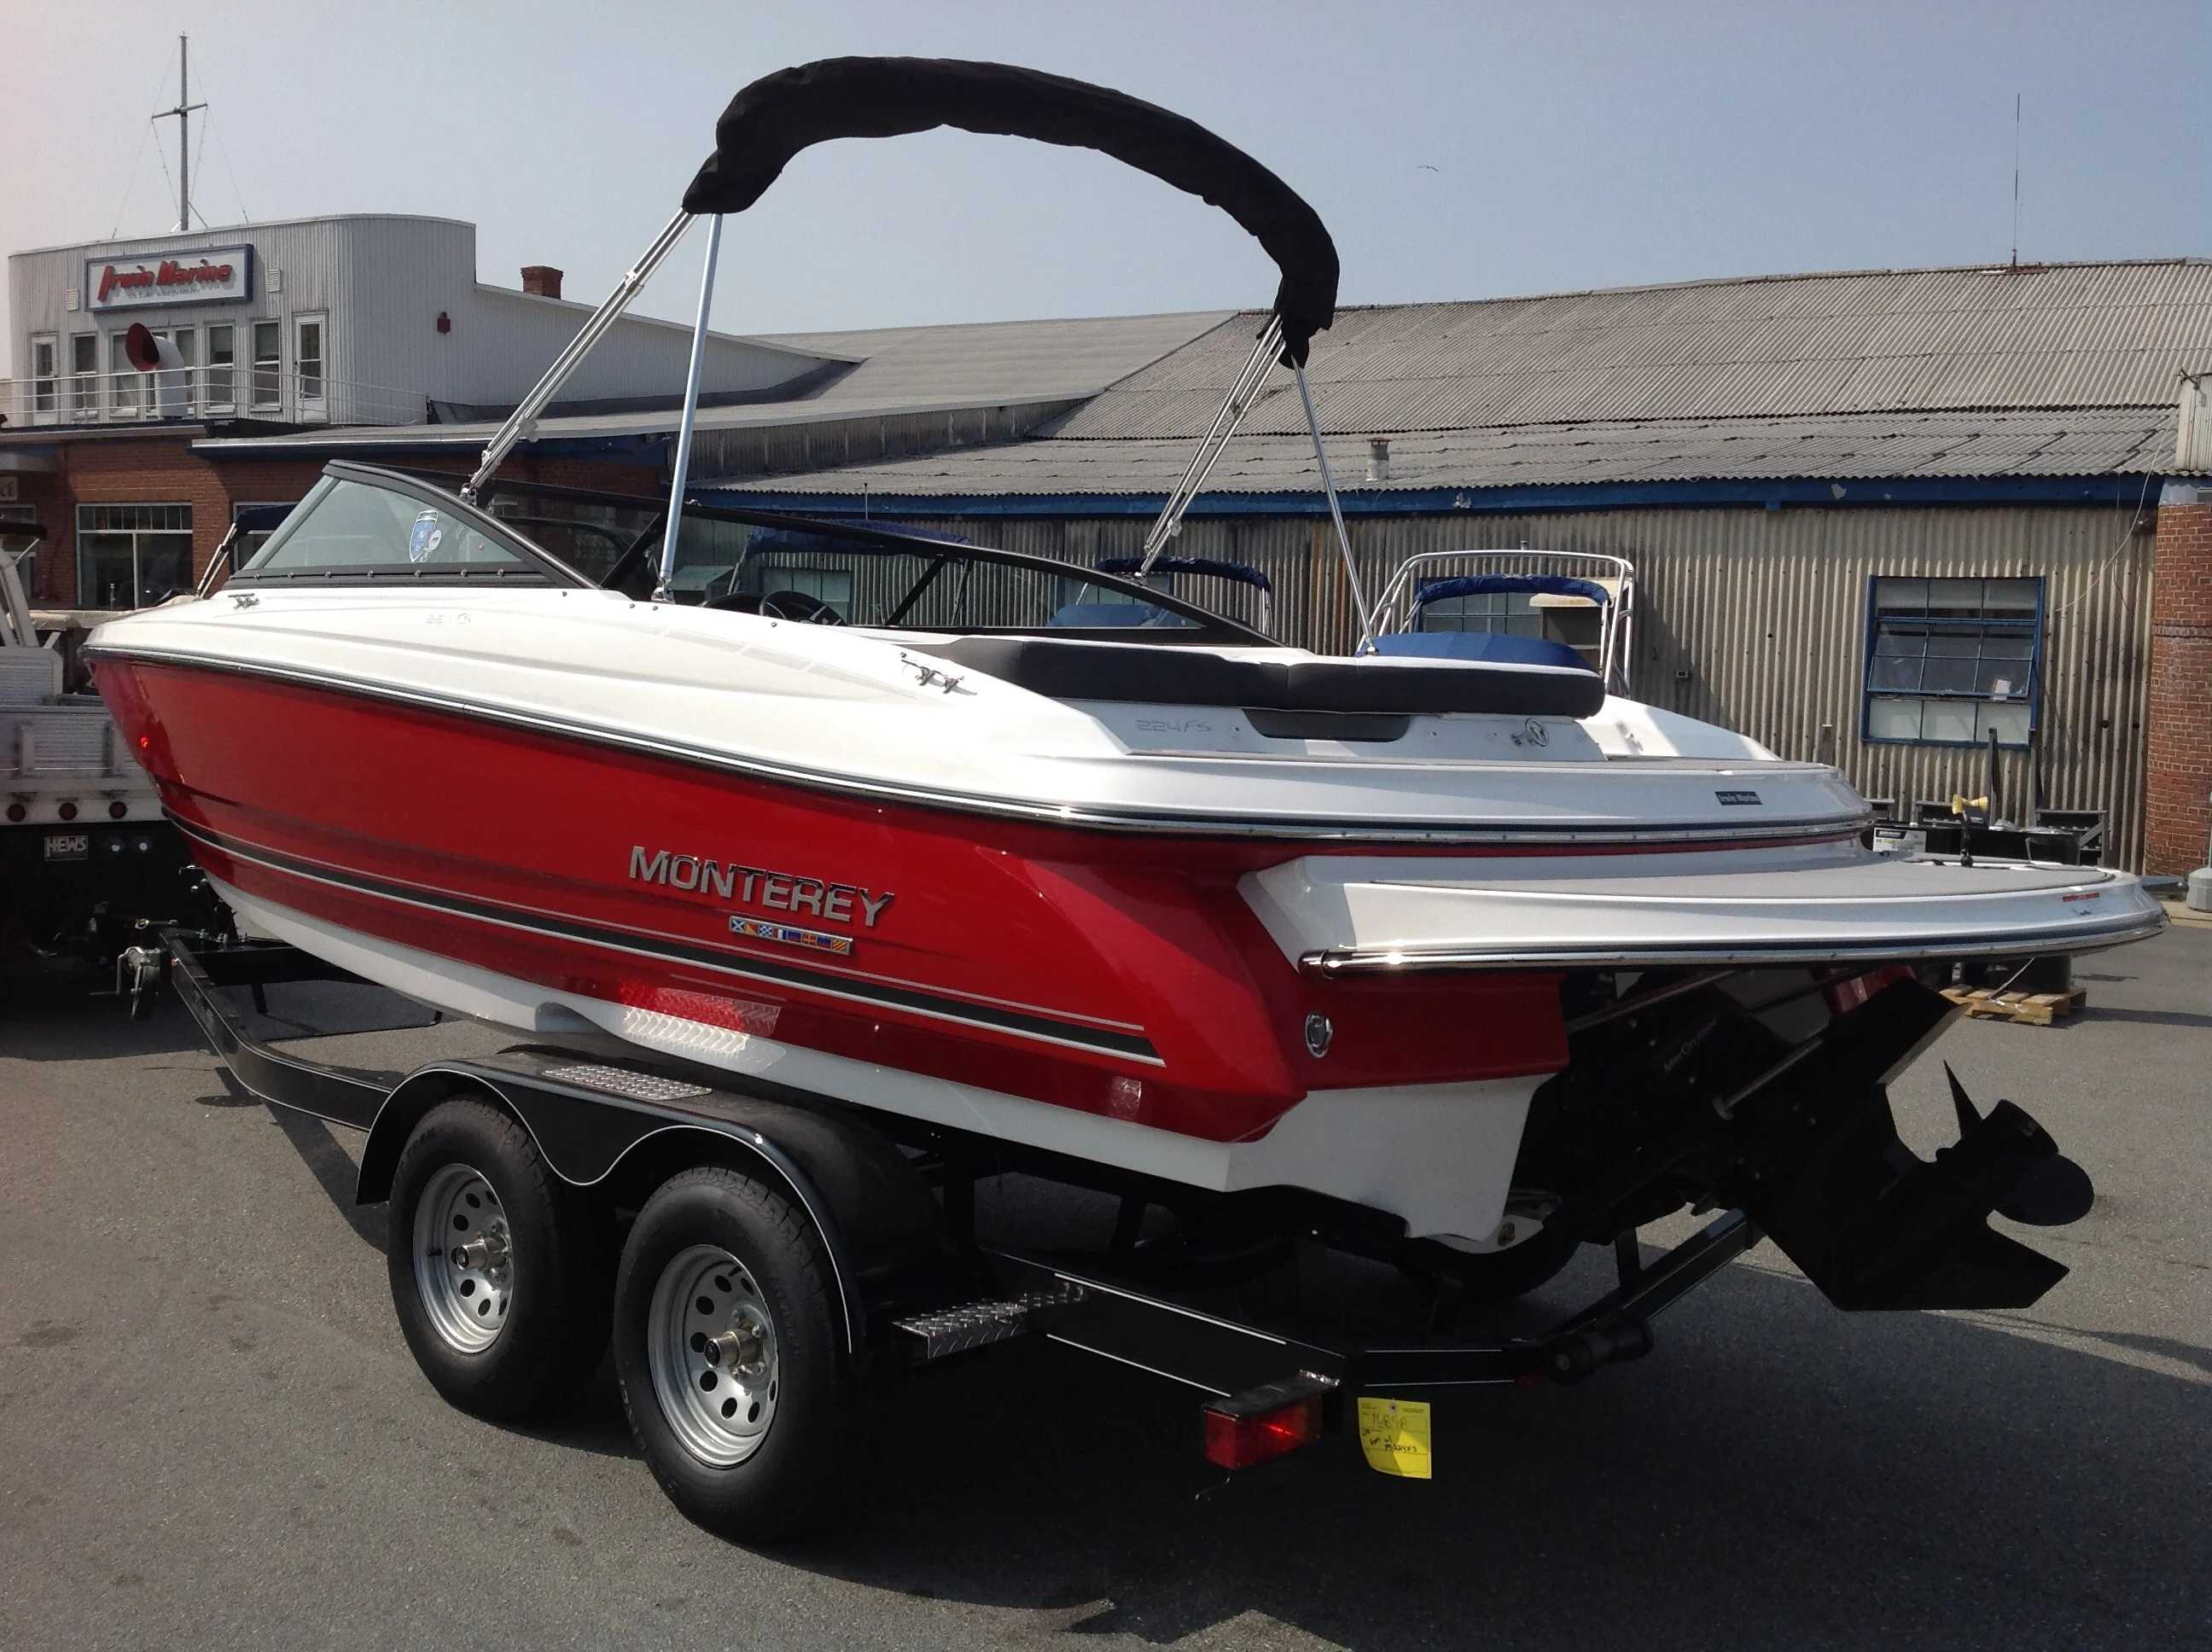 2022 Monterey boat for sale, model of the boat is 224FS & Image # 9 of 10